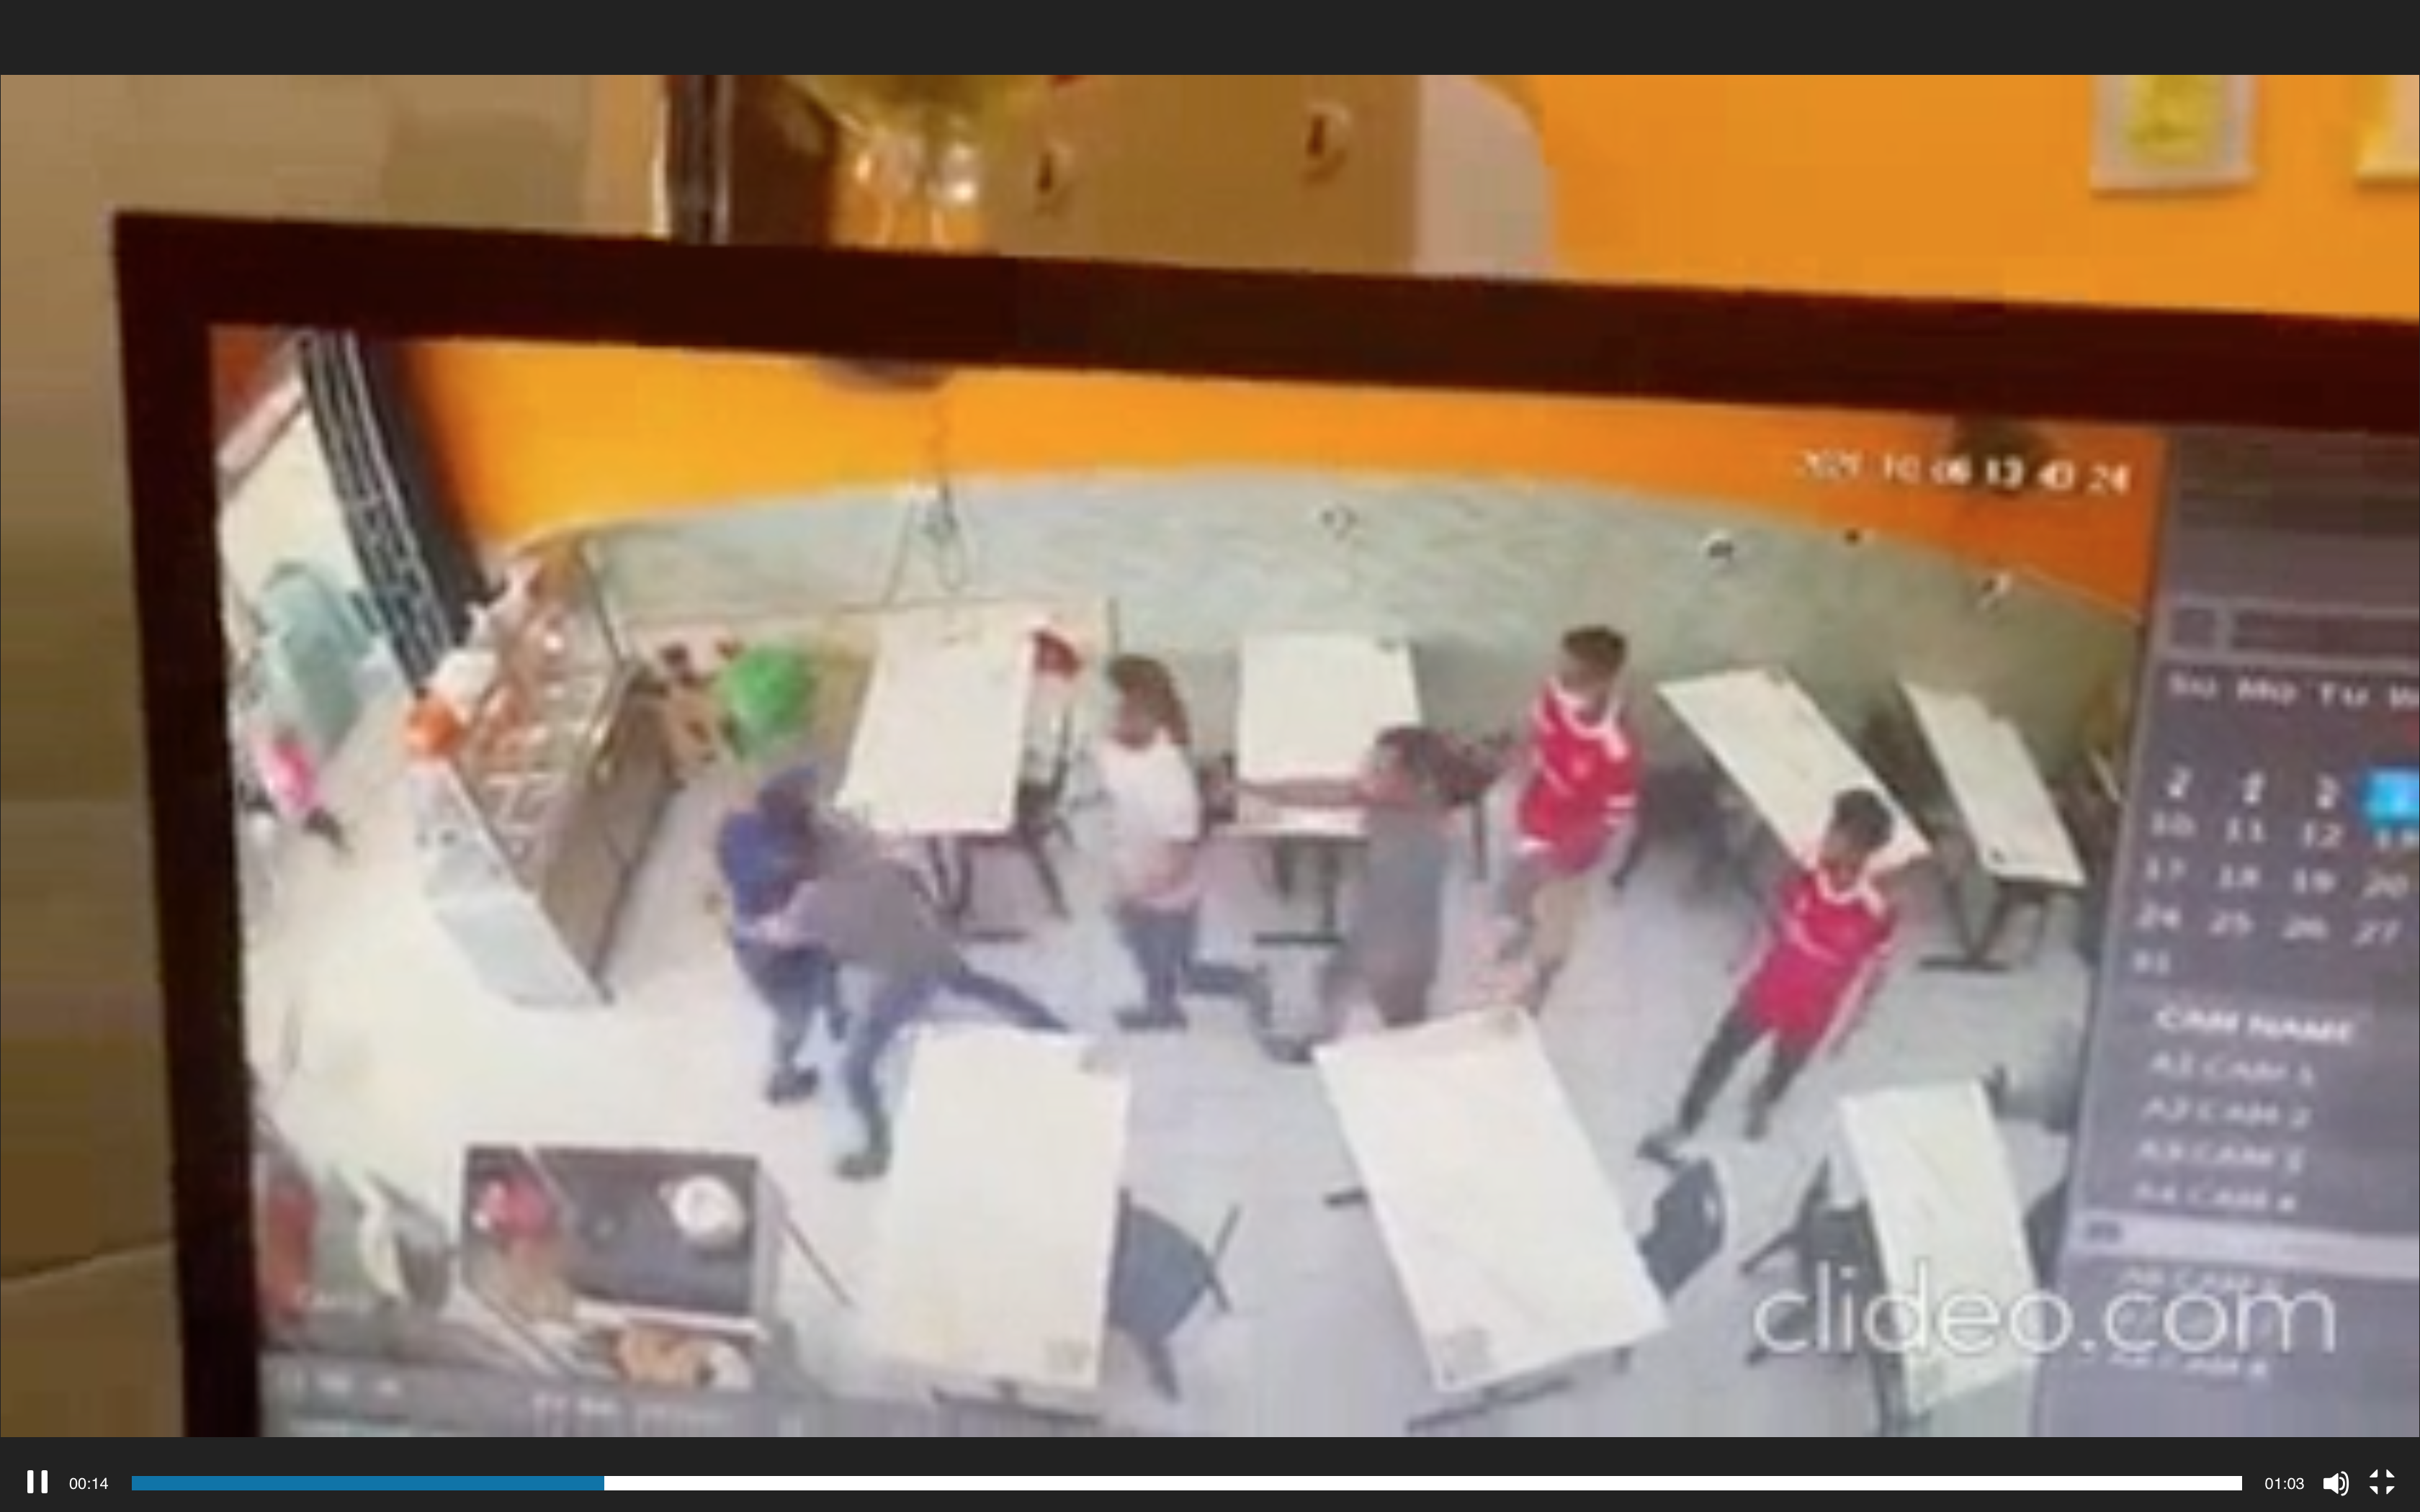 Other diners at the restaurant further assisted the staff and hauled the man outside of the store.